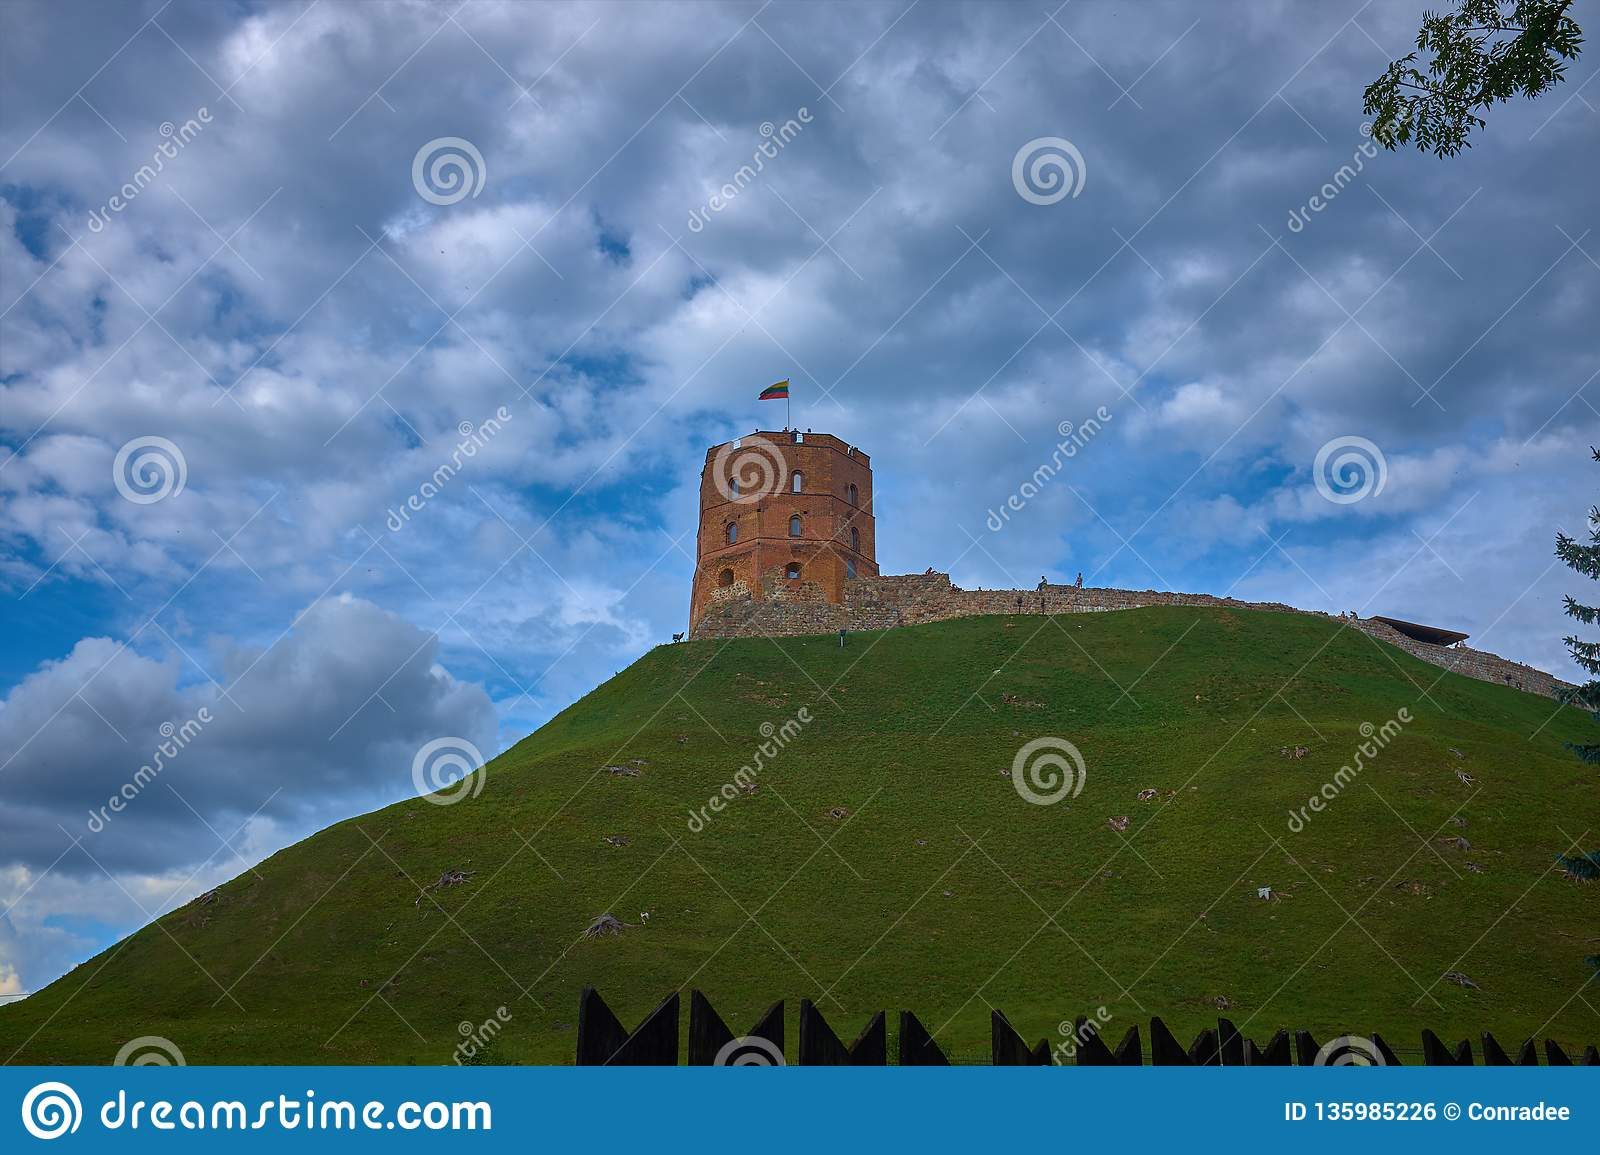 Tower Of Gediminas Gedimino Tower on hill In Vilnius, Lithuania